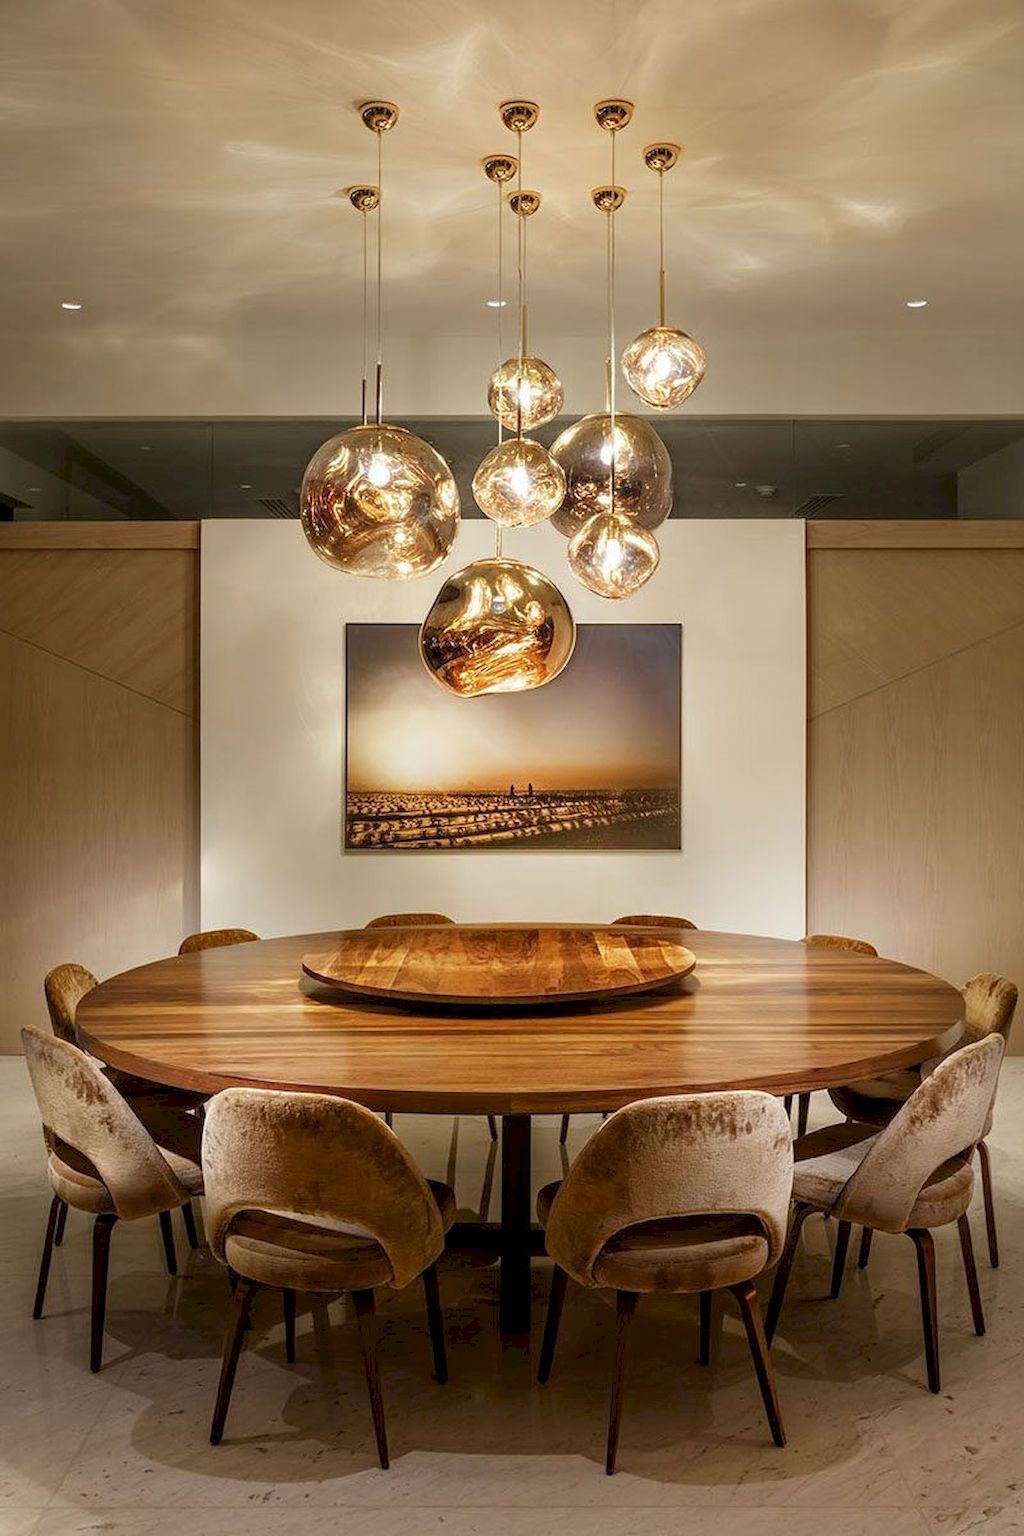 Round Dining Table Farmhouse Glam Gold Chandelier Round Dining Room Table Decor Round Dining Table Decor Round Dining Room Table